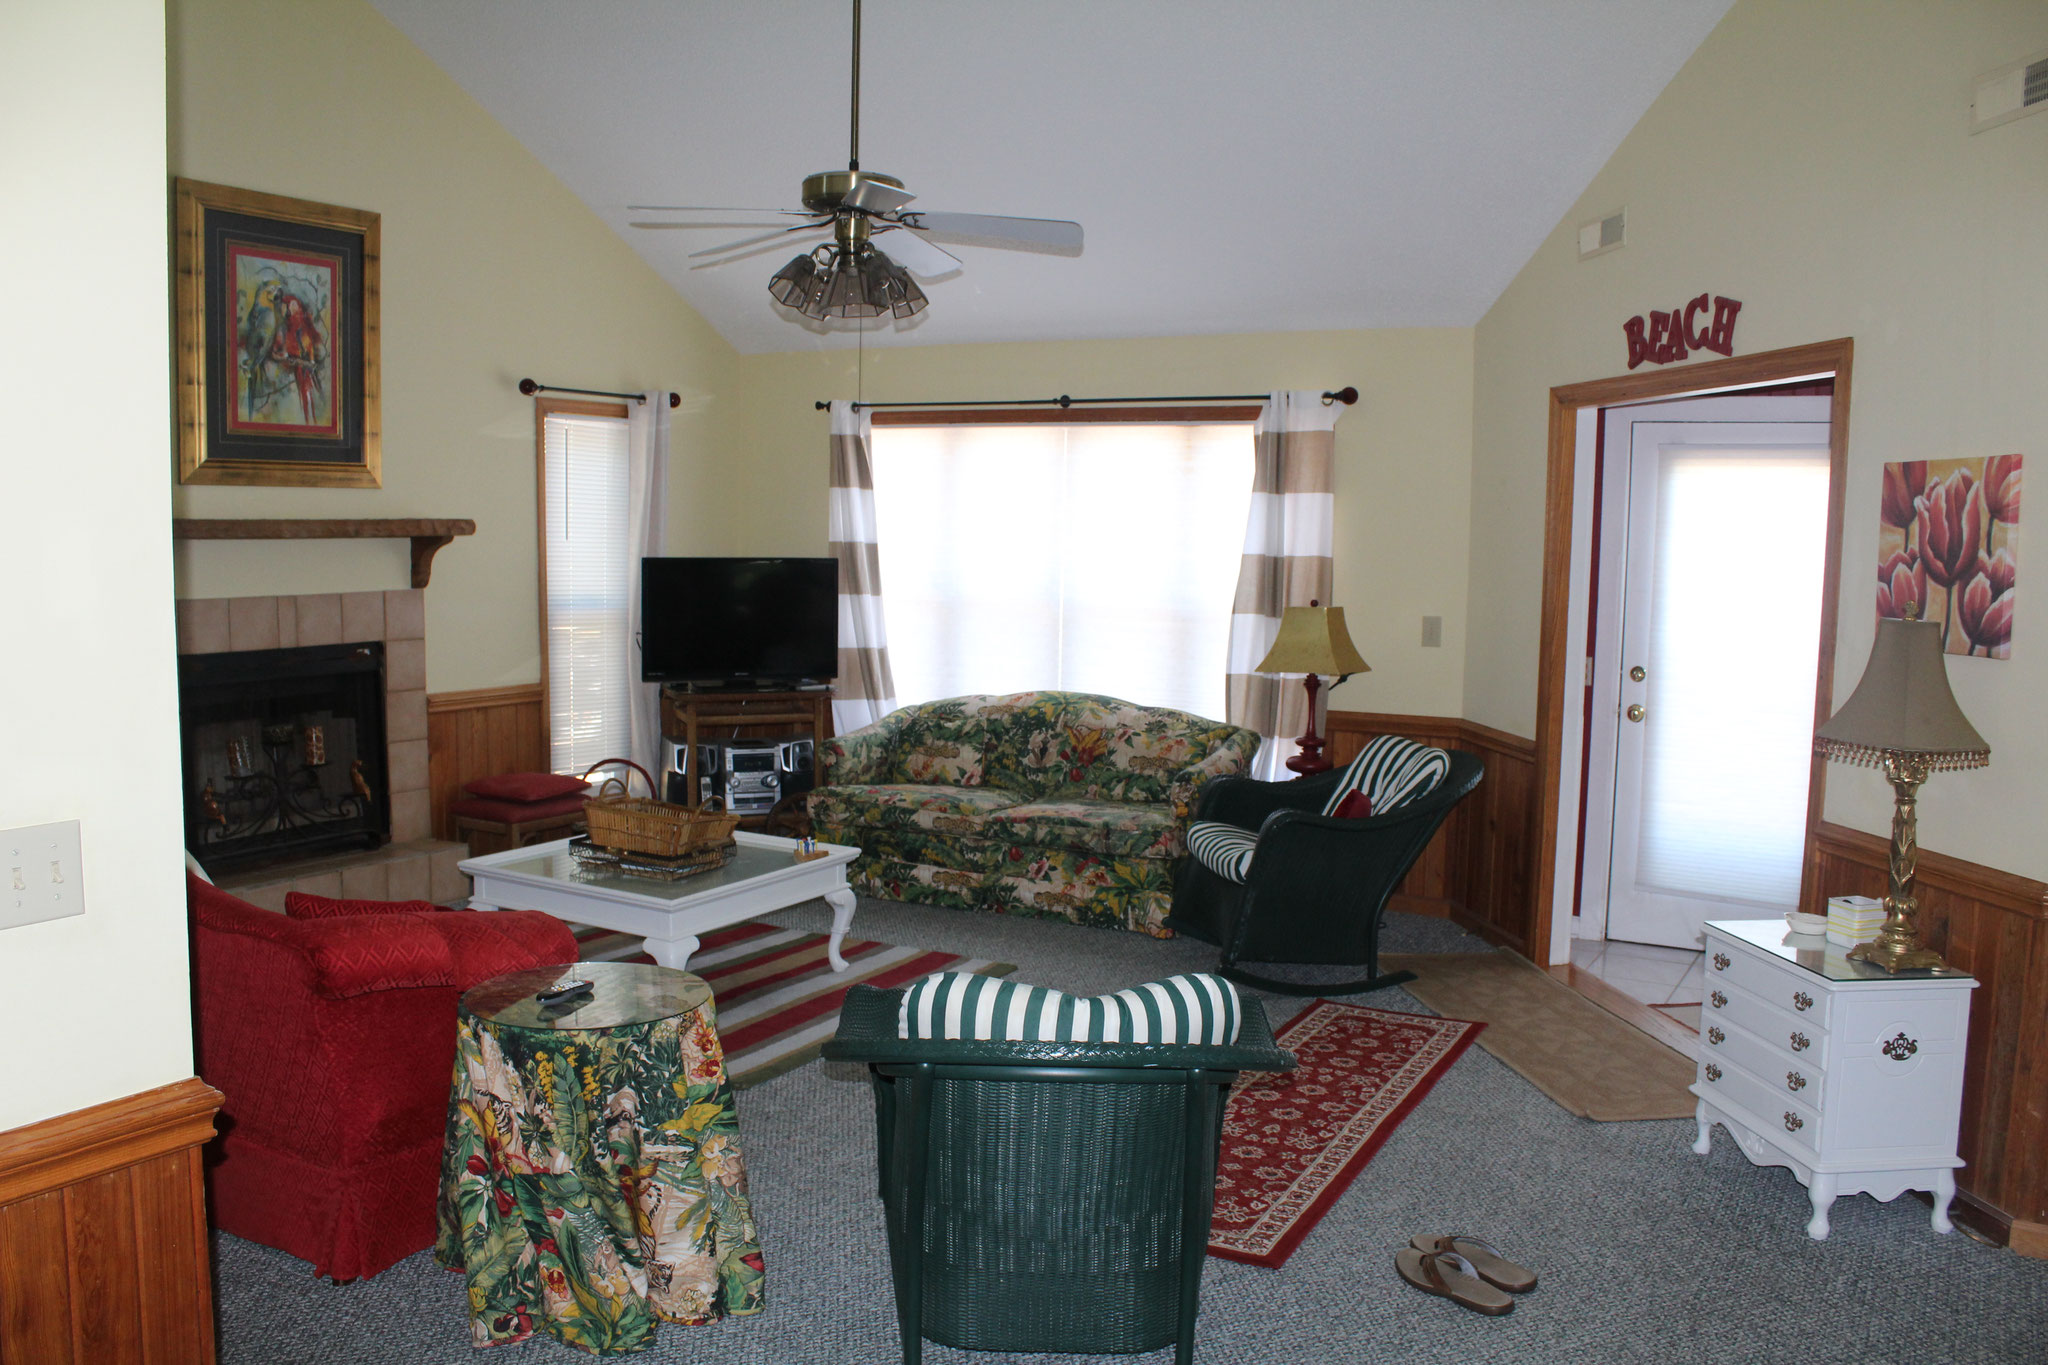 The den, as seen from the kitchen.